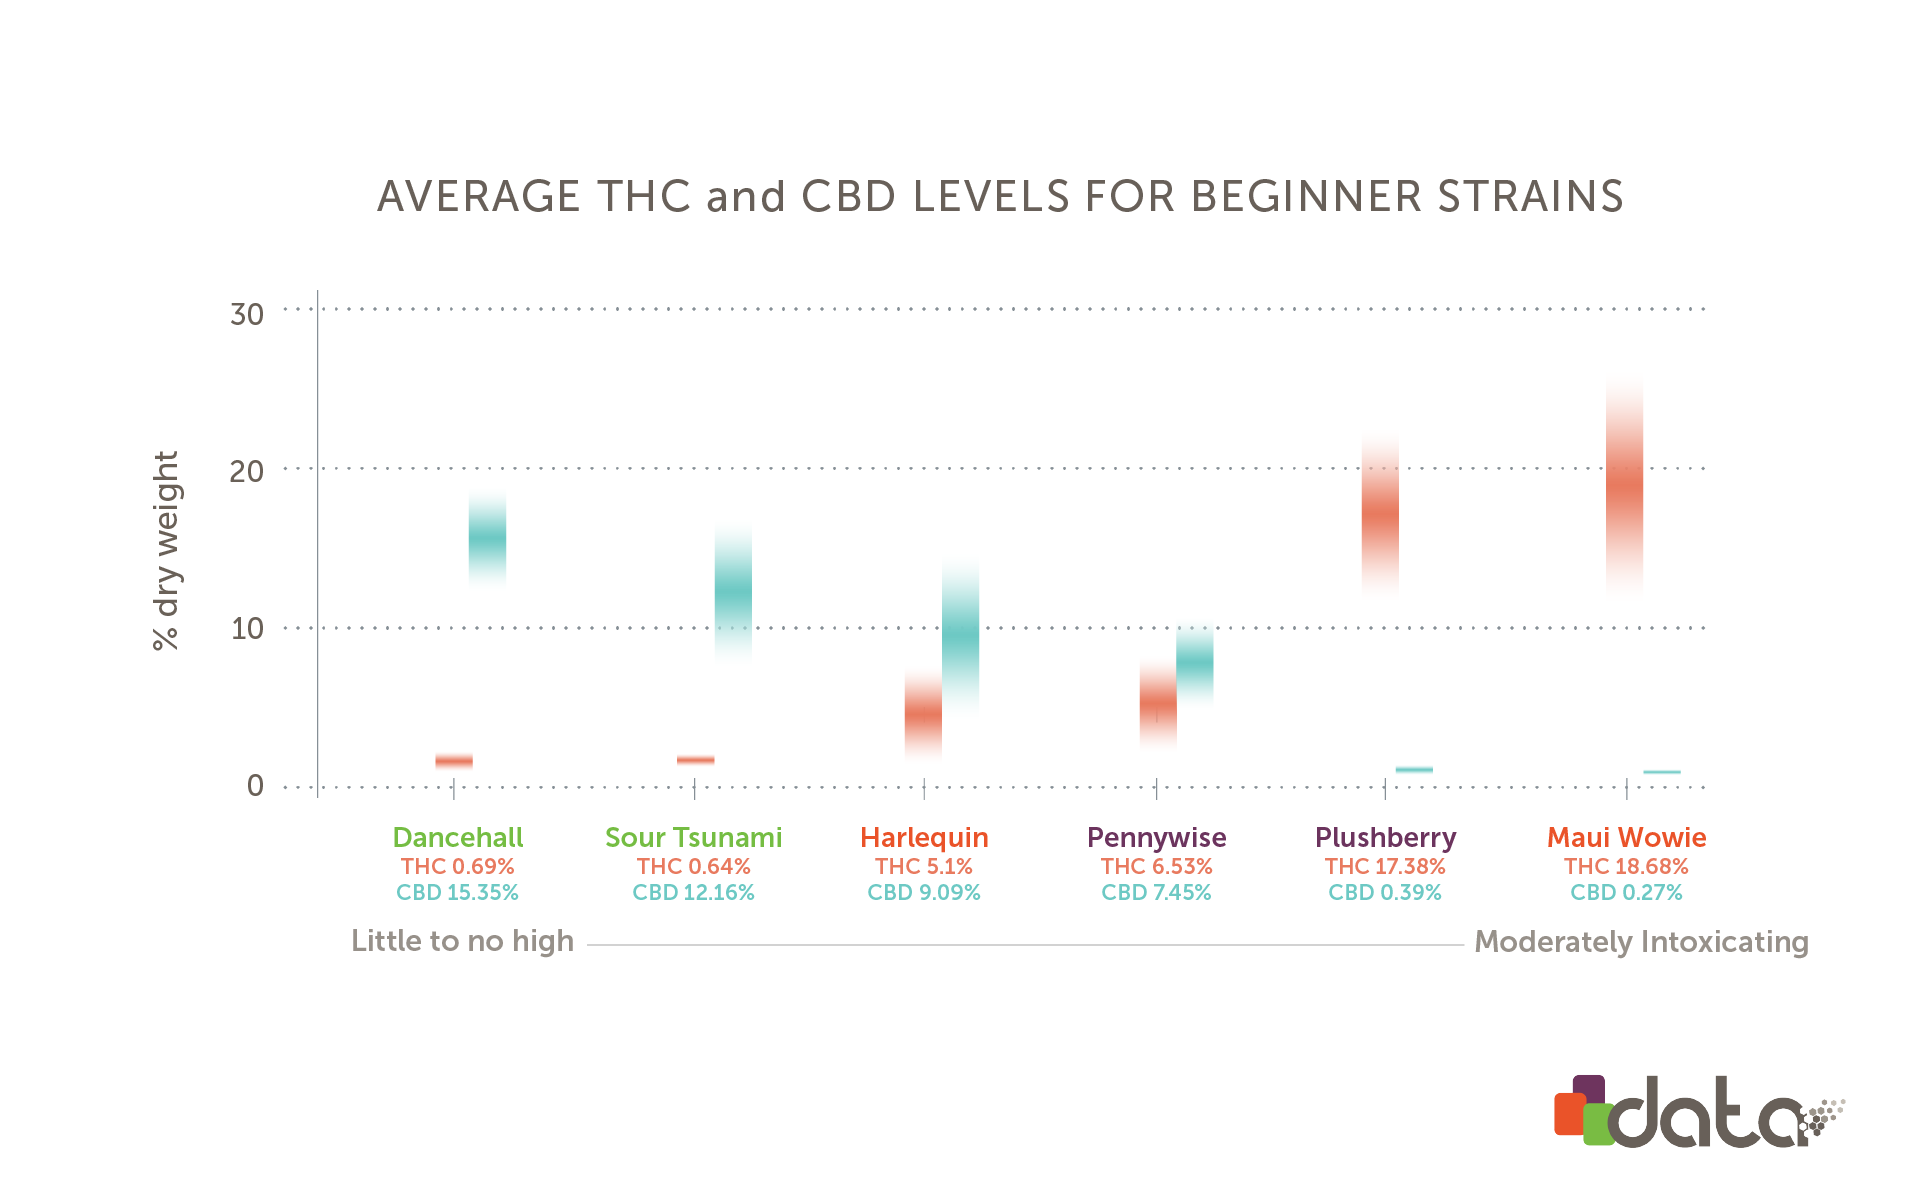 graph of average thc & cbd levels in marijuana strains for beginners